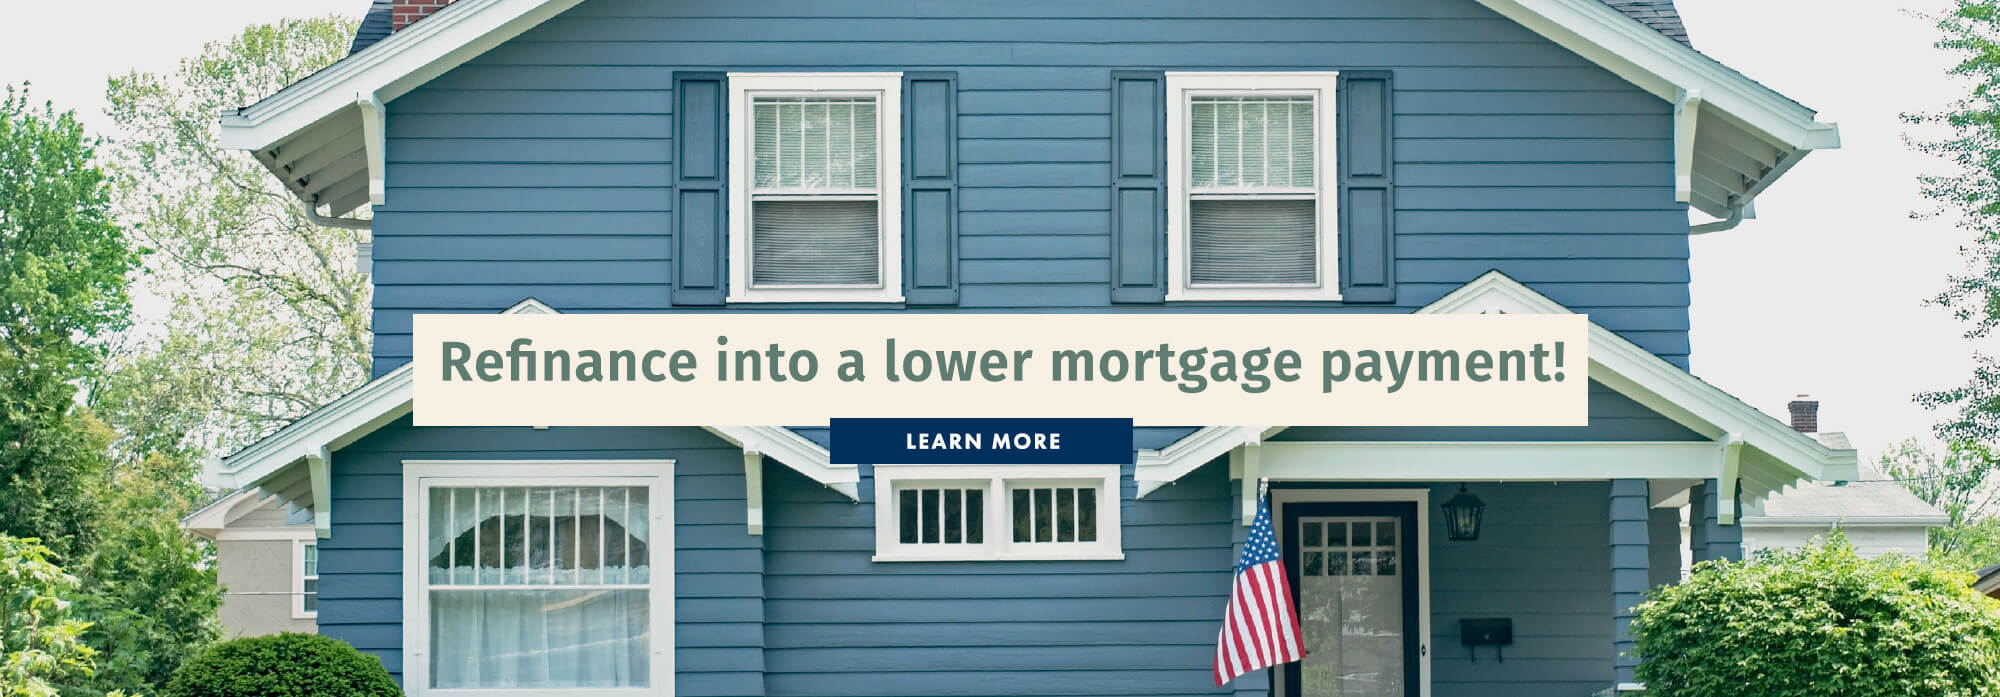 Refinance into a lower mortgage payment!